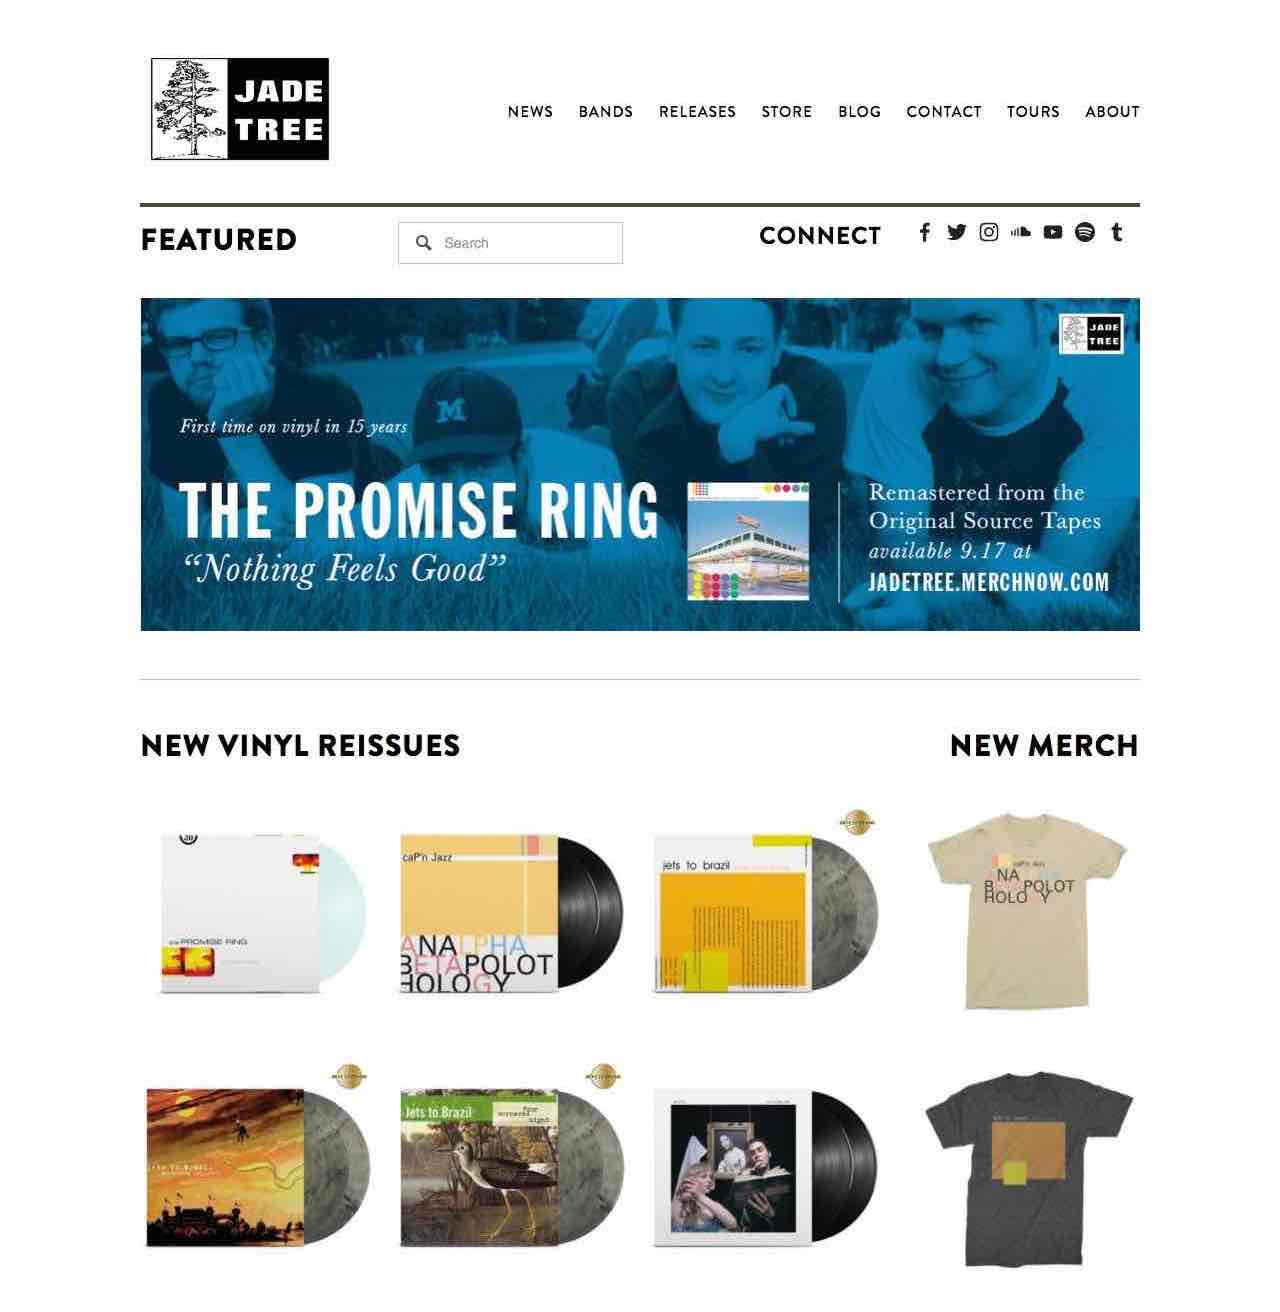 home page for jade tree records, featuring a lot of unreadable images